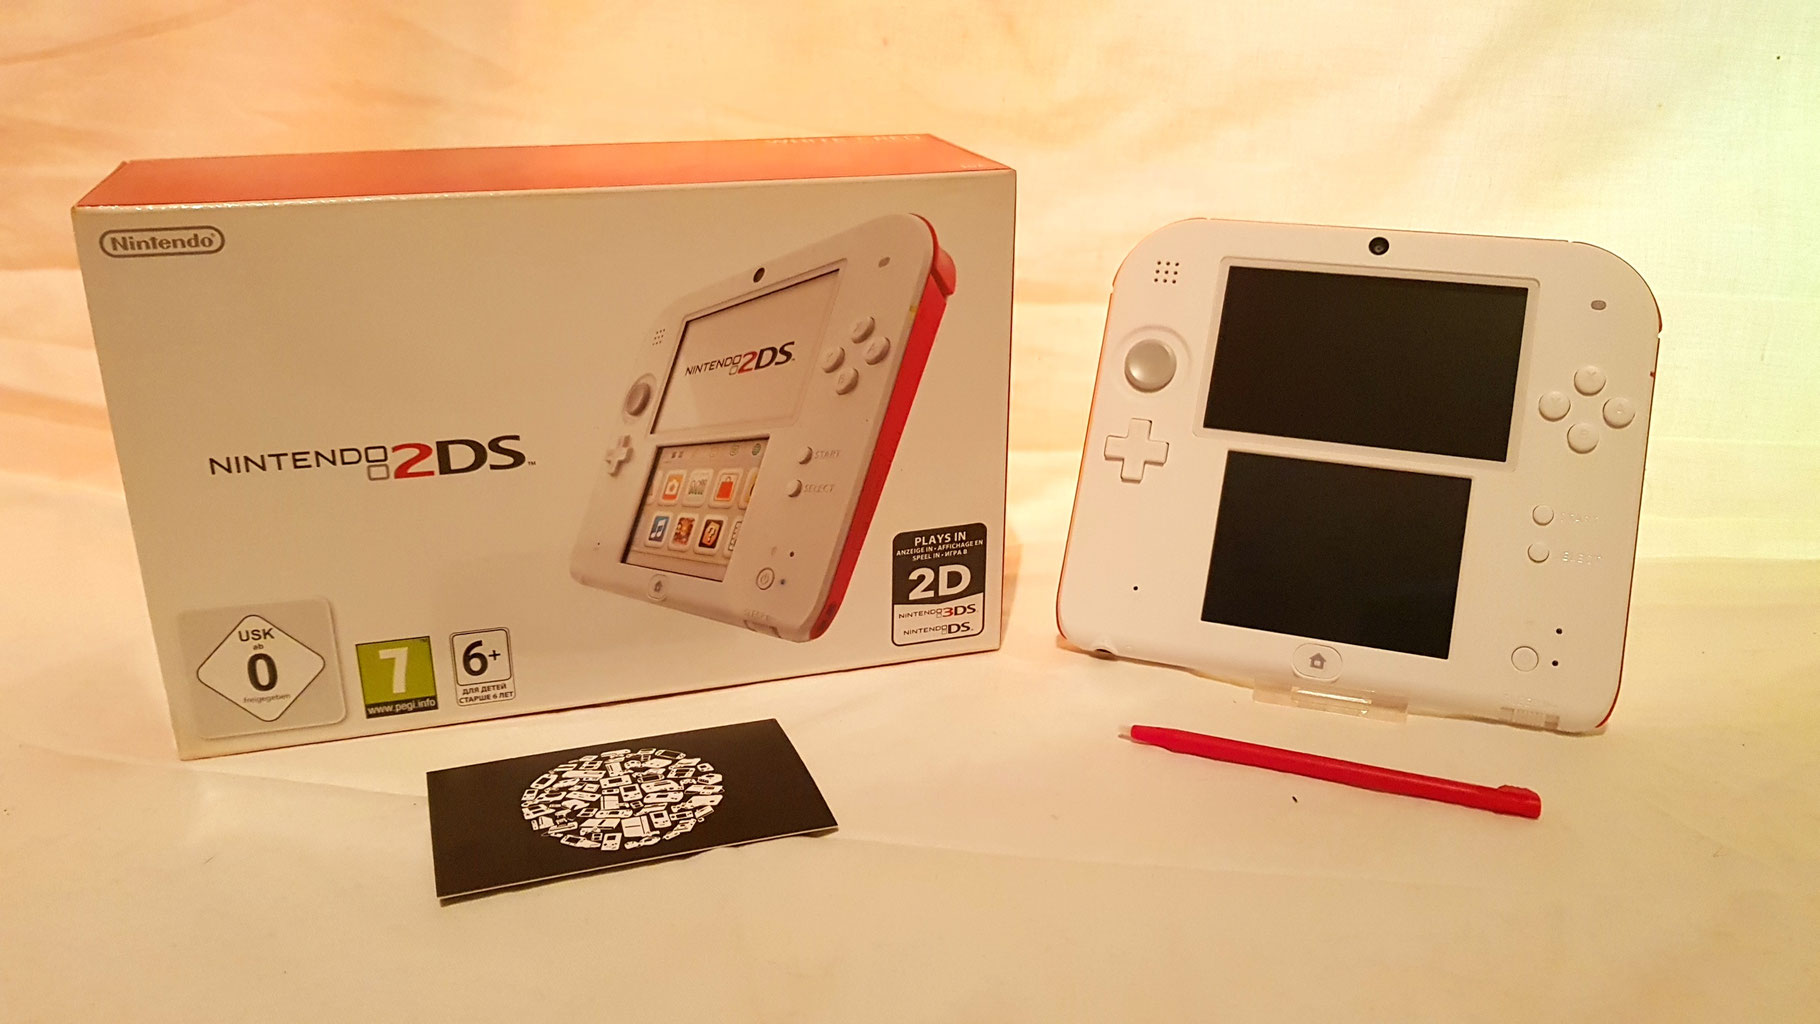 Nintendo 2ds Console Variations The Database For All New 3ds Xl Pikachu Yellow Edition Colors And